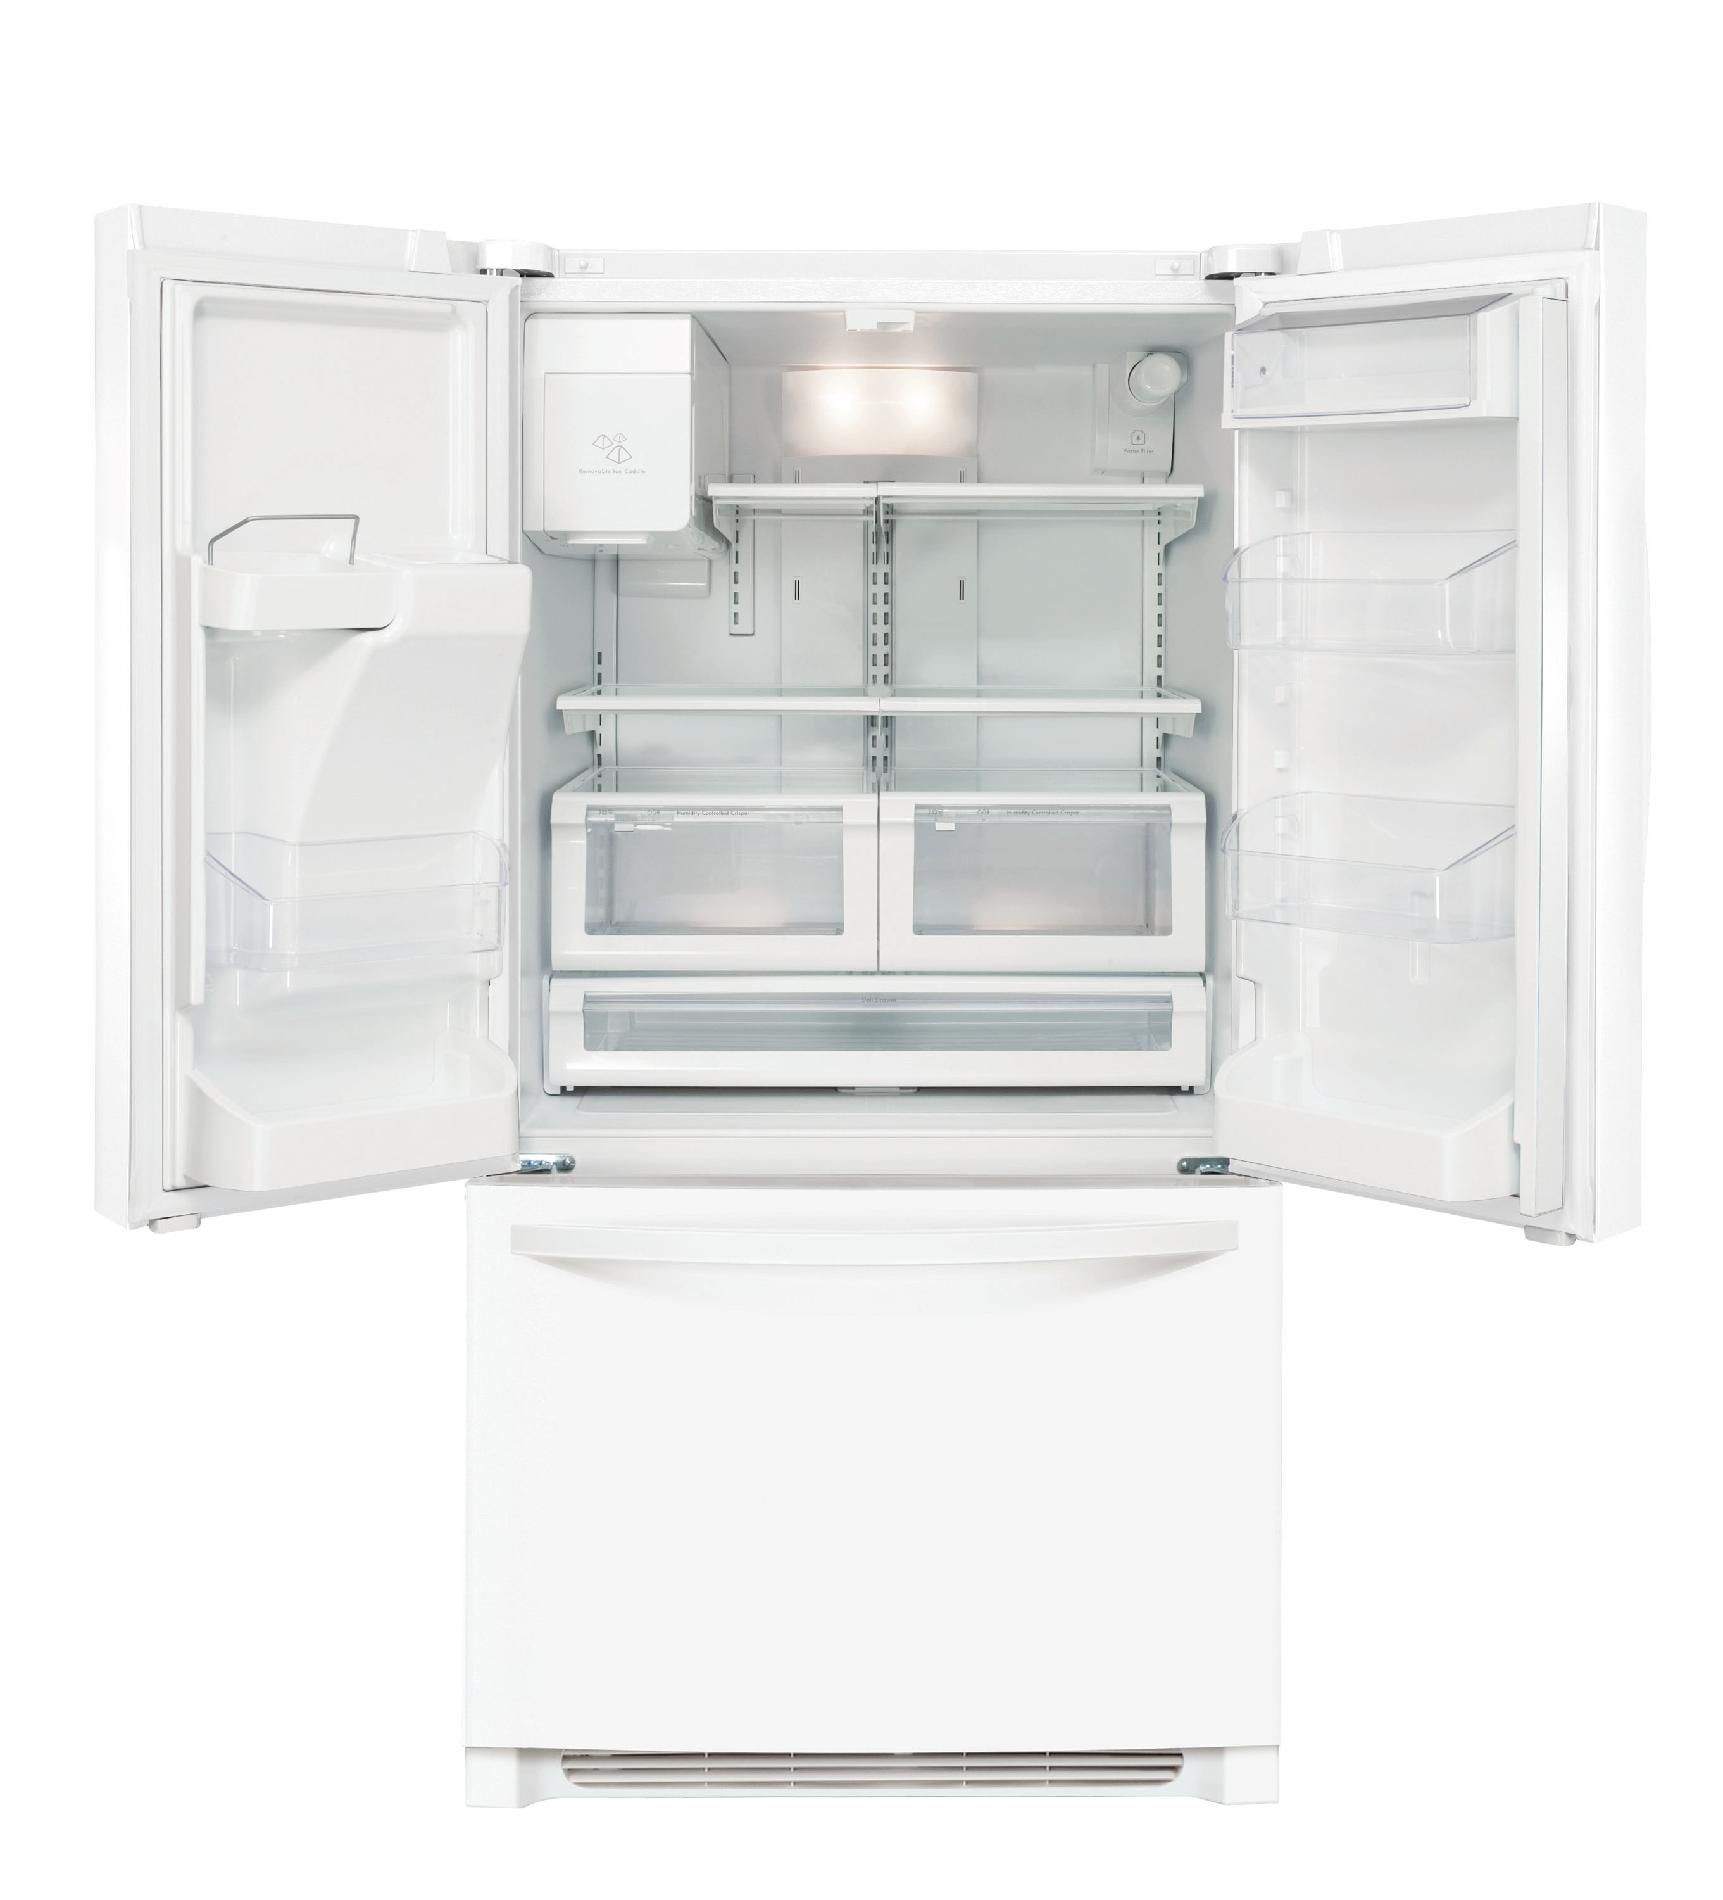 Kenmore 26.7 cu. ft. French DoorBottom-Freezer Refrigerator - White